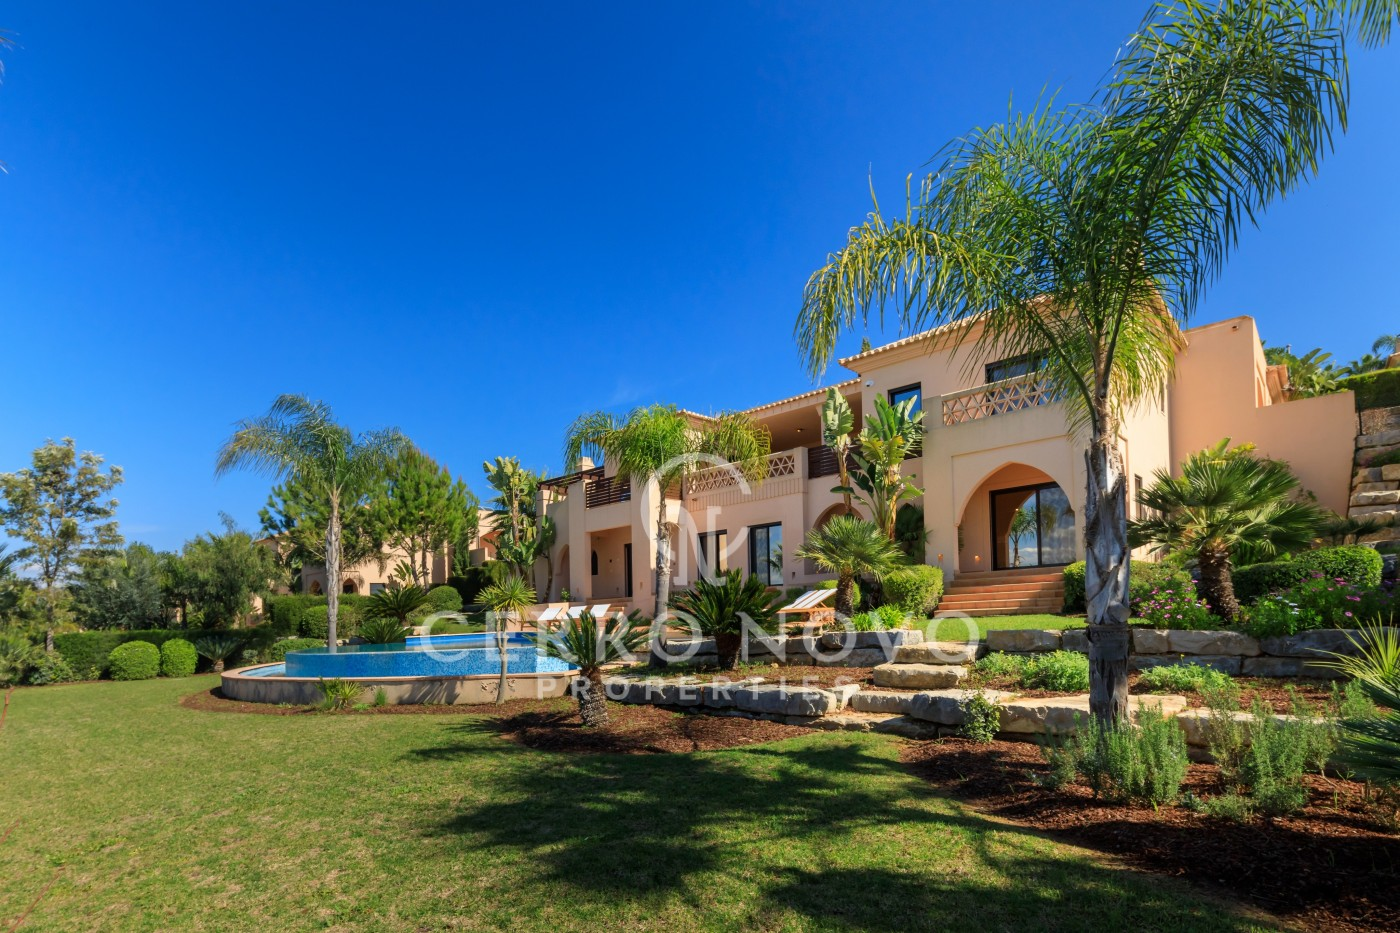 Four bedroom villa overlooking the golf course in the Algarve